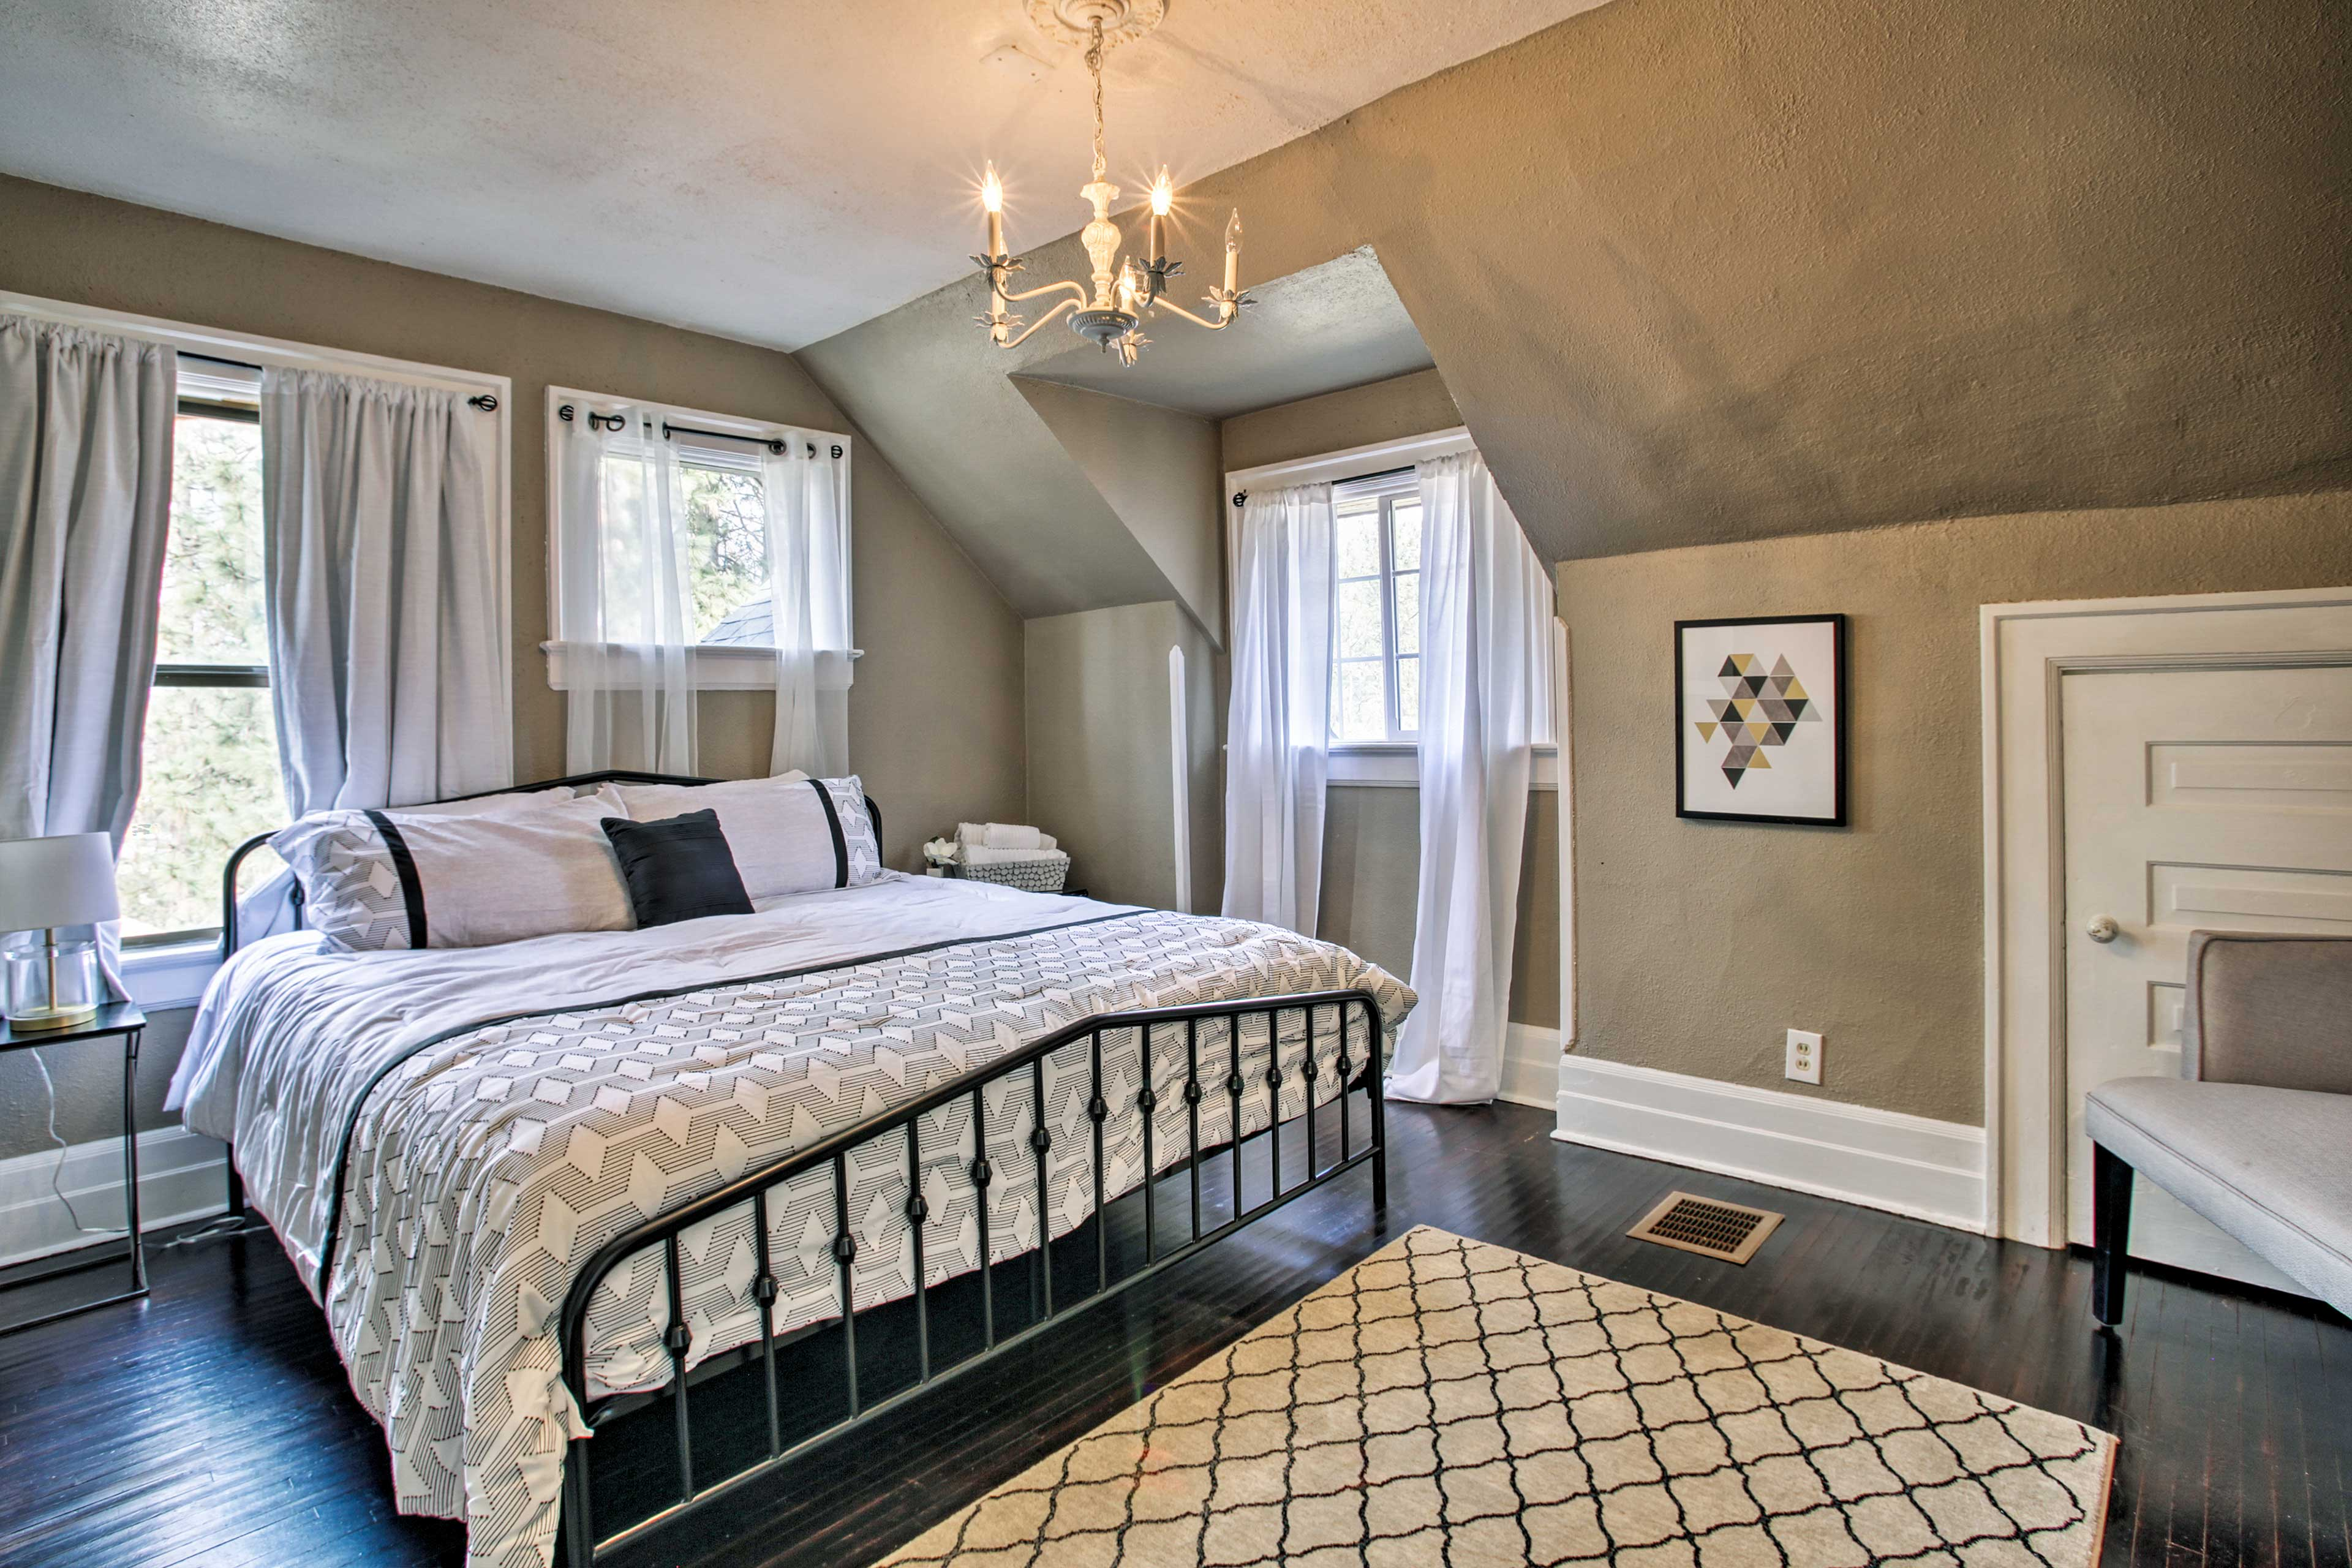 This bedroom features a king bed as well..